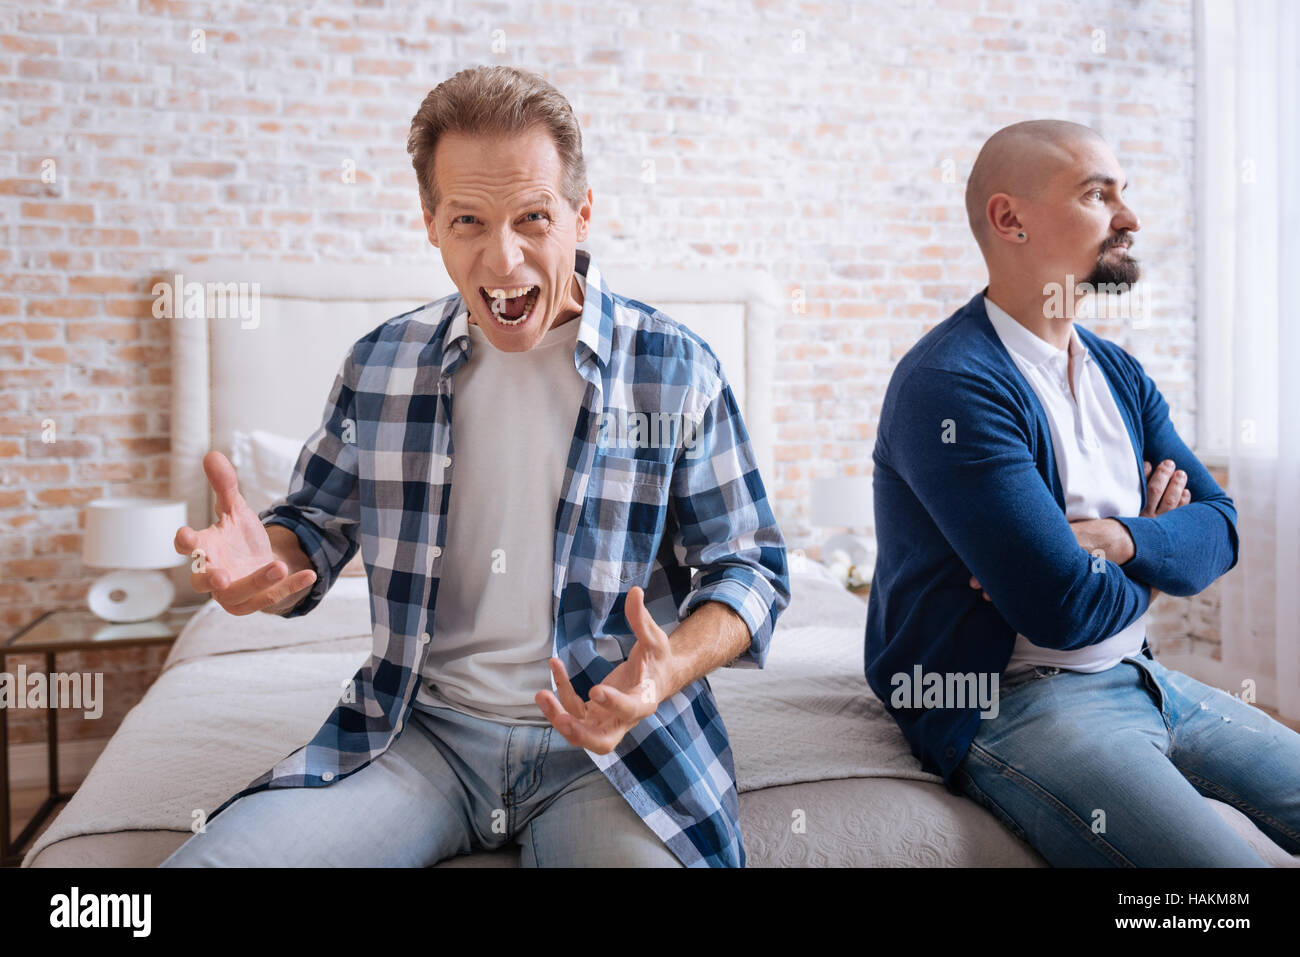 Inflamed man screaming loudly at home - Stock Image